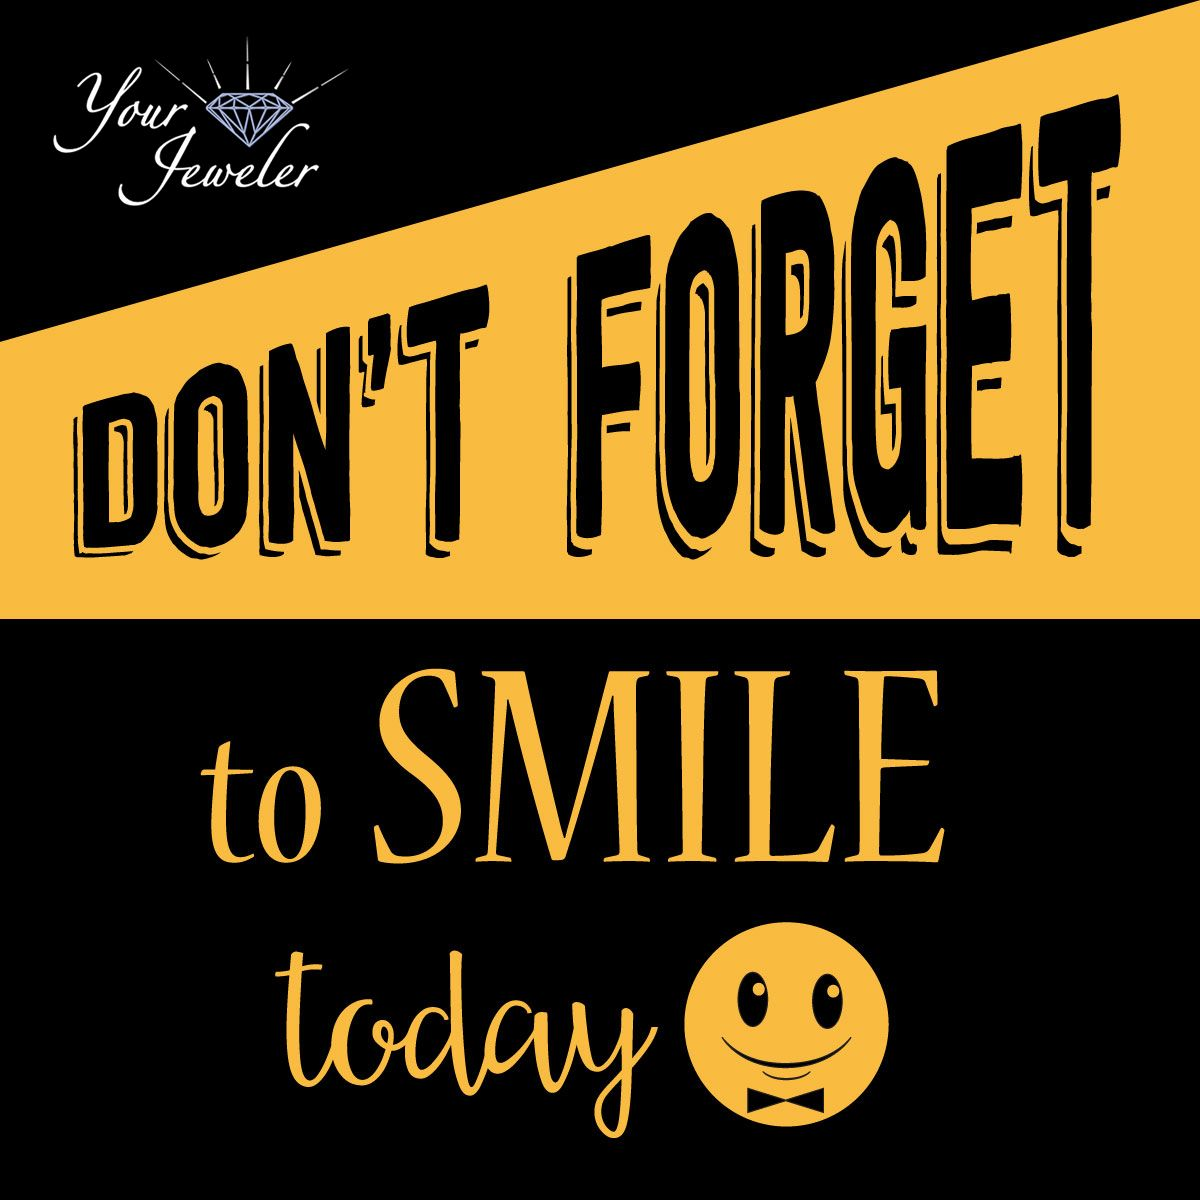 Studies suggest that smiling, forced or not, can have a positive effect on your mood, decrease stress levels, and even make everyone around you feel better. Come on, you can do it! #smile #positive #happy